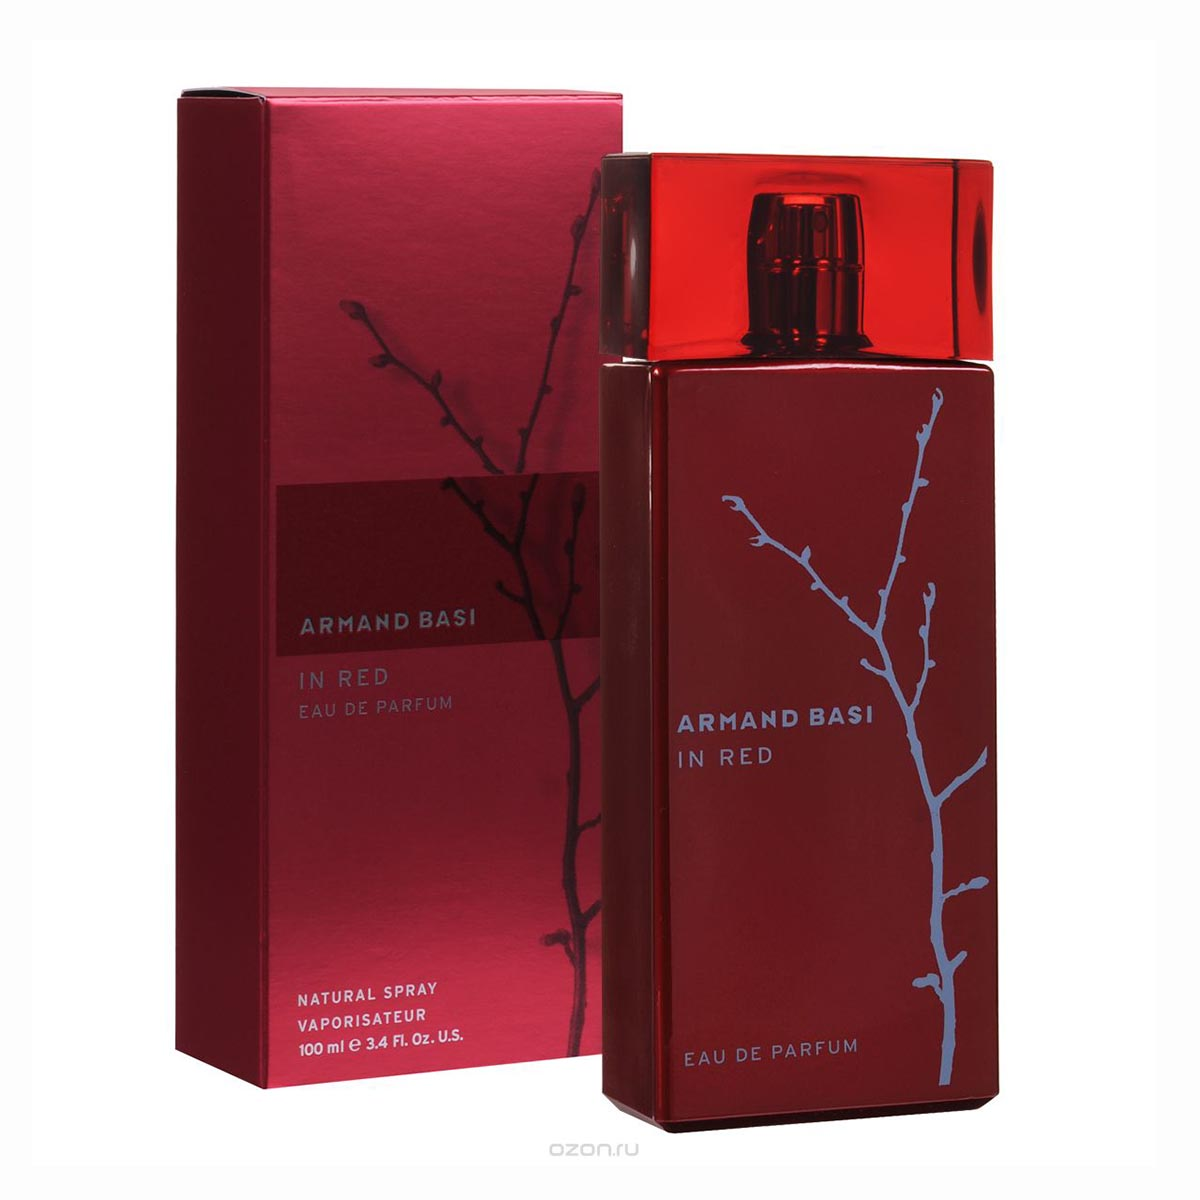 Armand basi in red eau de parfum 100ml vaporizador